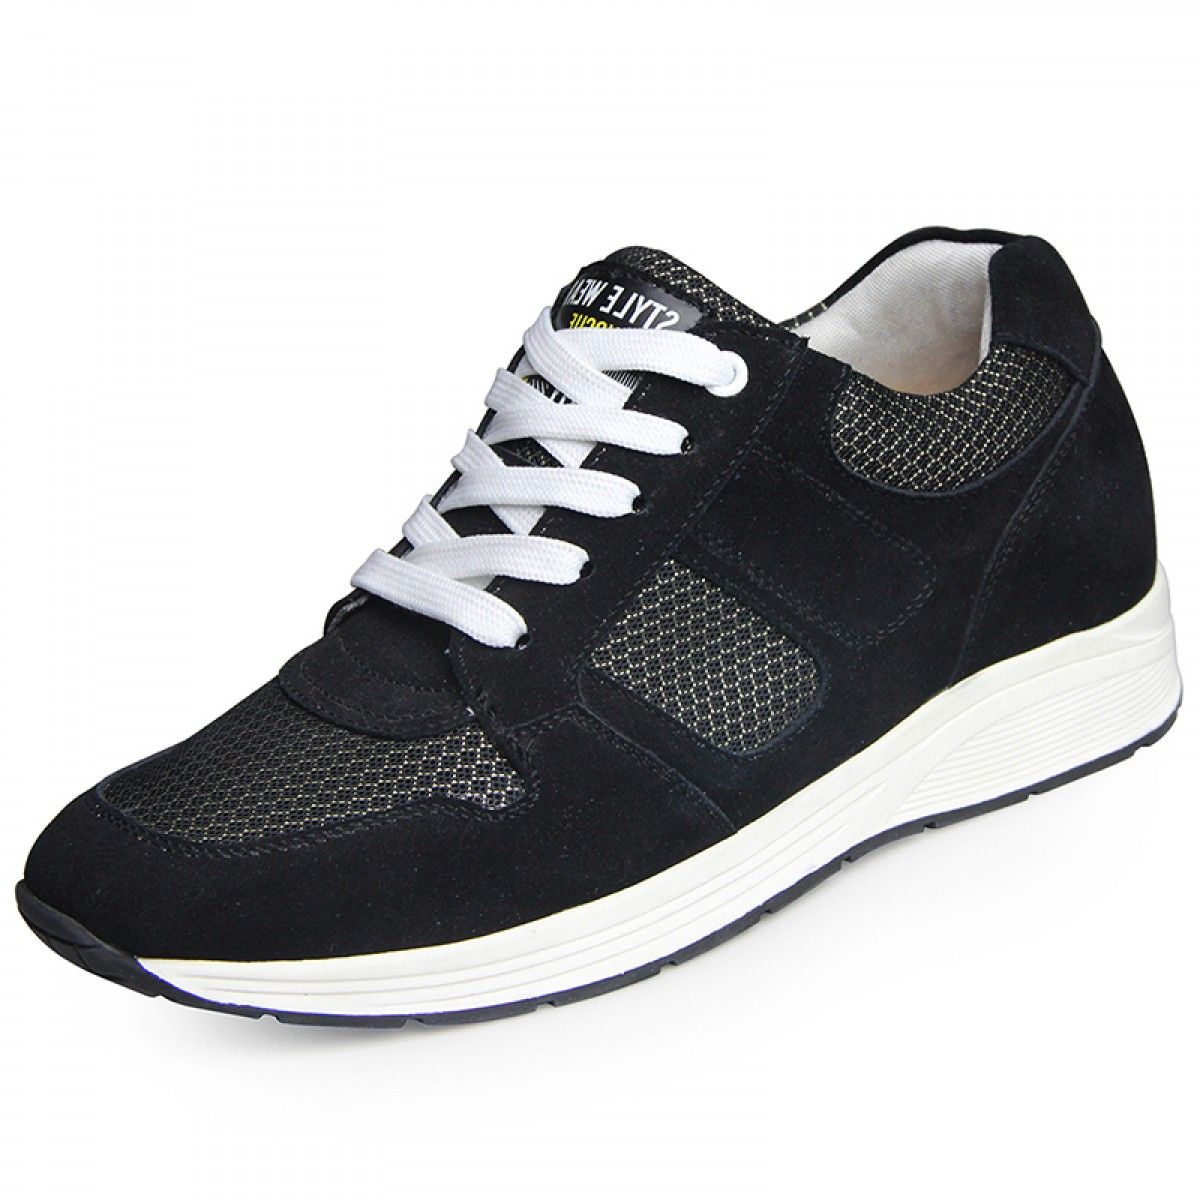 summer increasing shoes for men look taller 6.5cm / 2.56inches black elevator sneakers